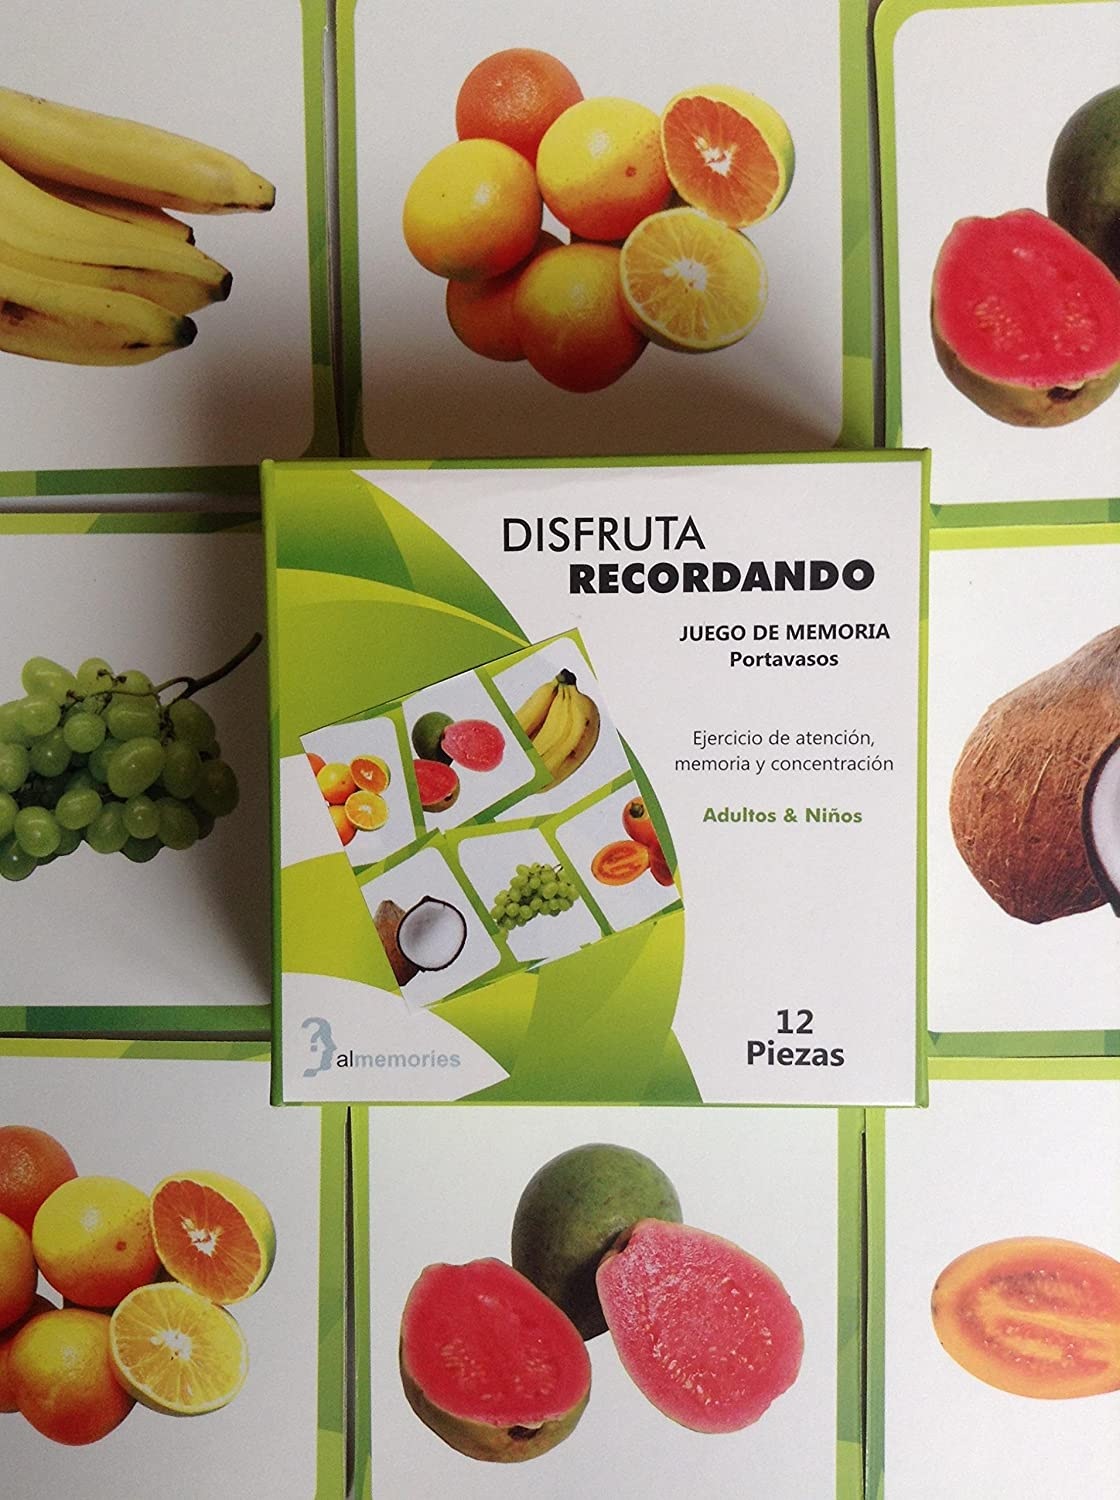 Amazon.com : Memory Game: 12 Pieces (4 X 4 Inches Ea) for Matching Fruit Images. Juego de Memoria - Frutas:12 Portavasos Juego de memoria 6 parejas de ...